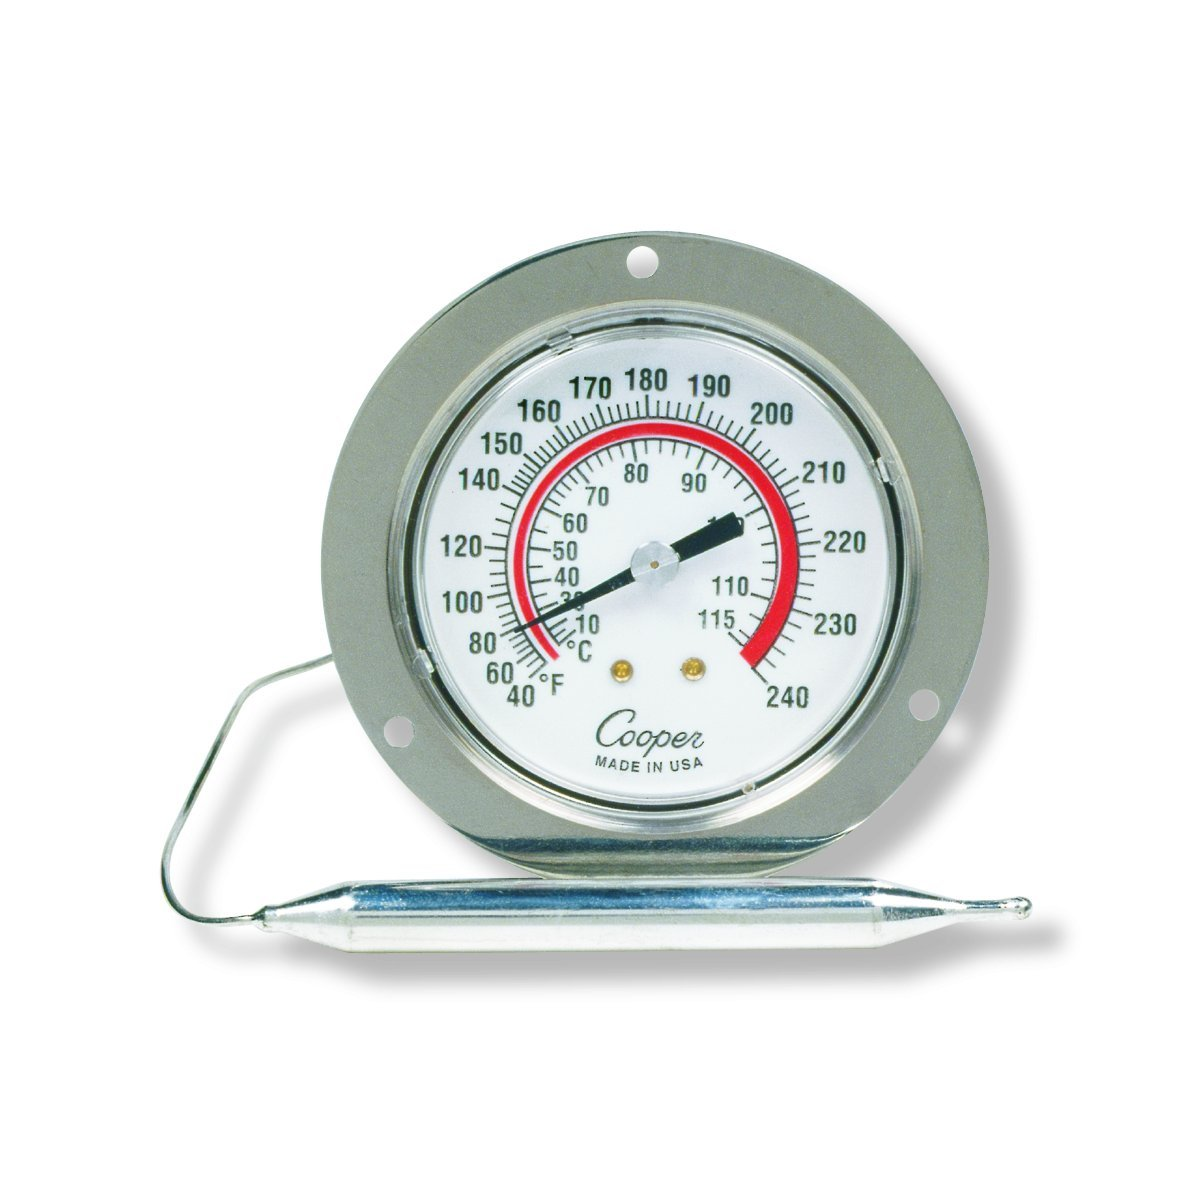 Cooper-Atkins 7112-05-3 Vapor Tension Panel Thermometer with Front Flange 40//240/°F Temperature Range NSF Certified